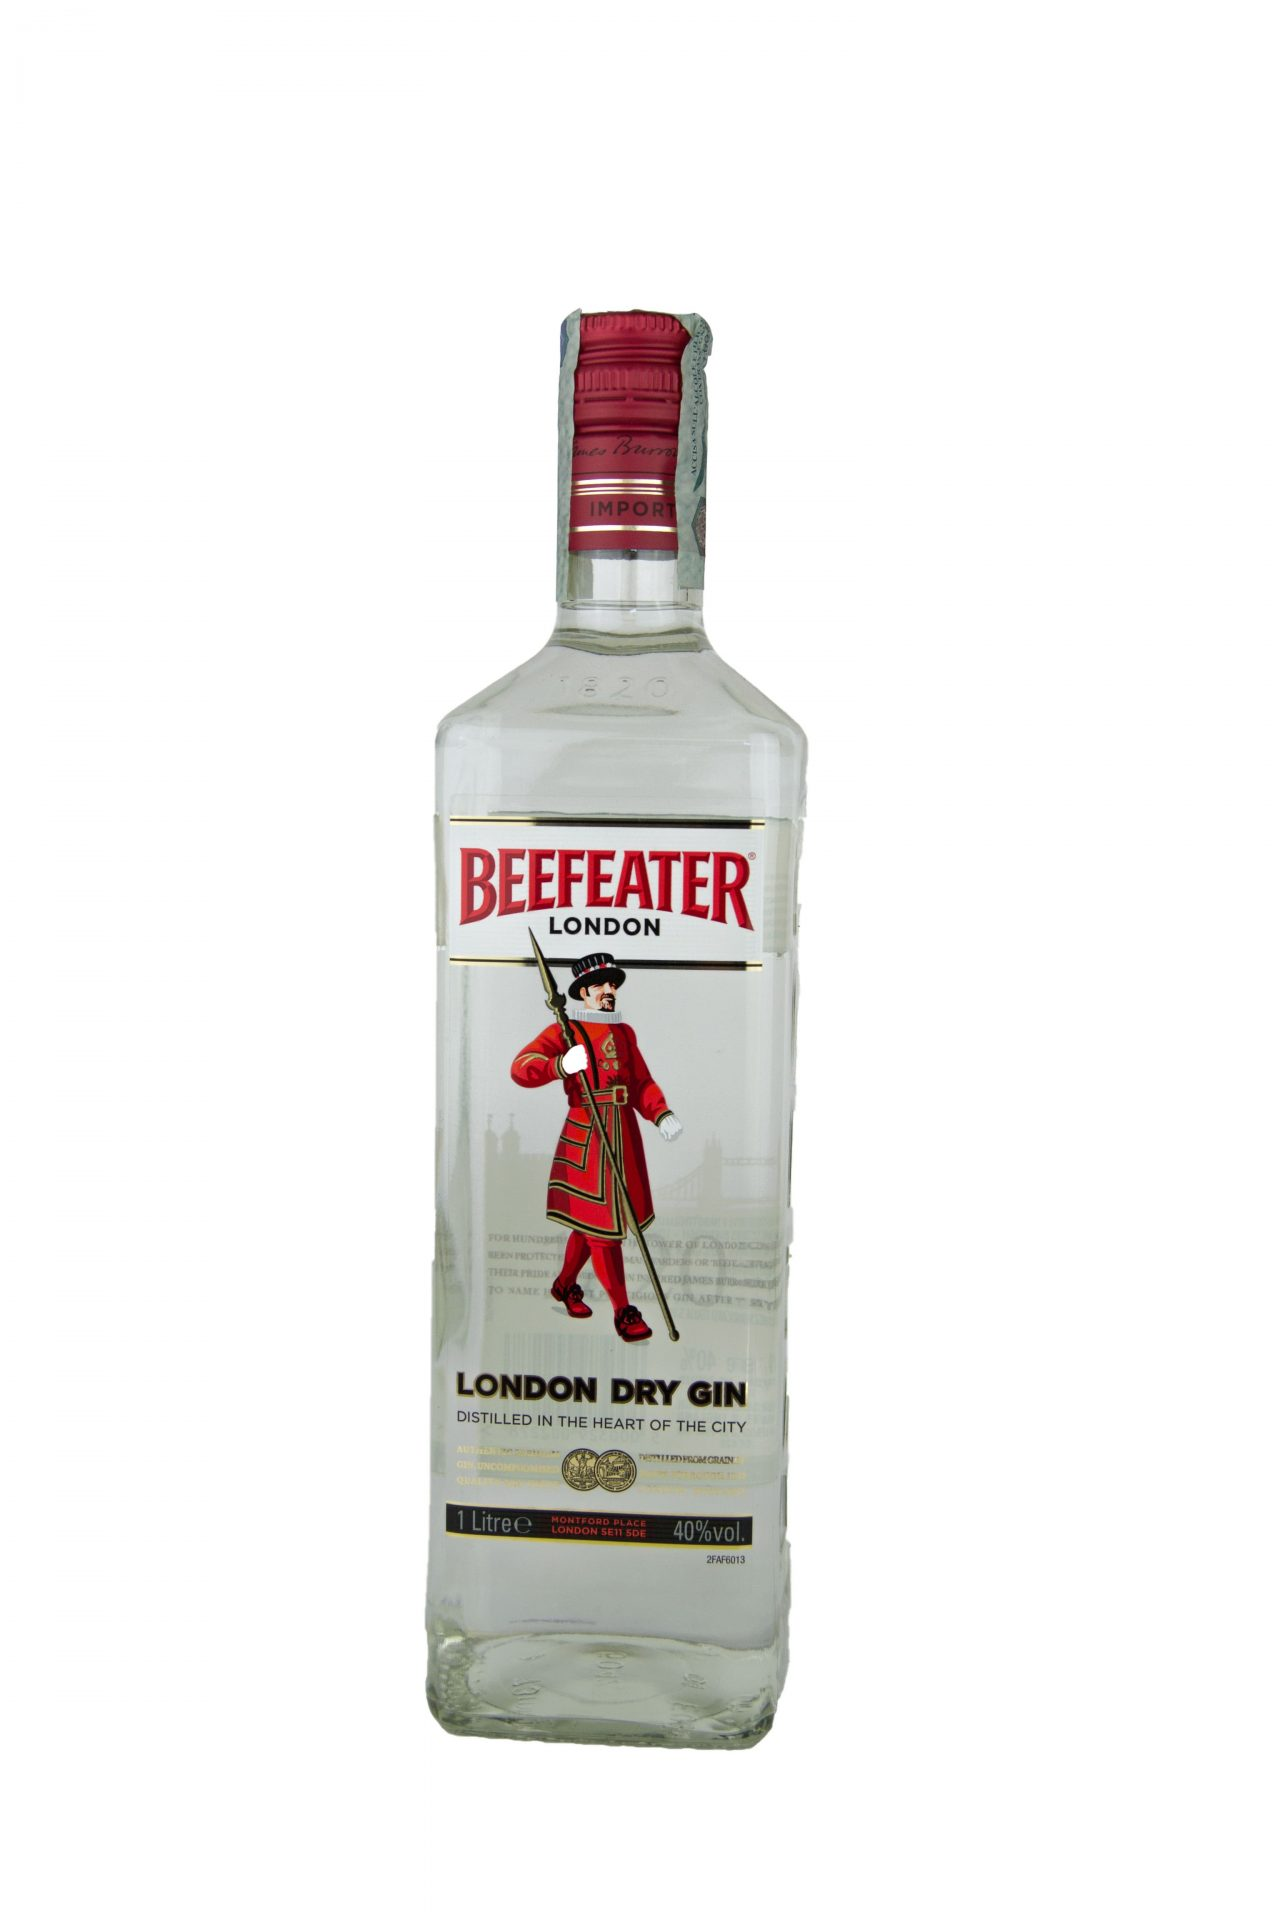 Beefeater London – London Dry Gin